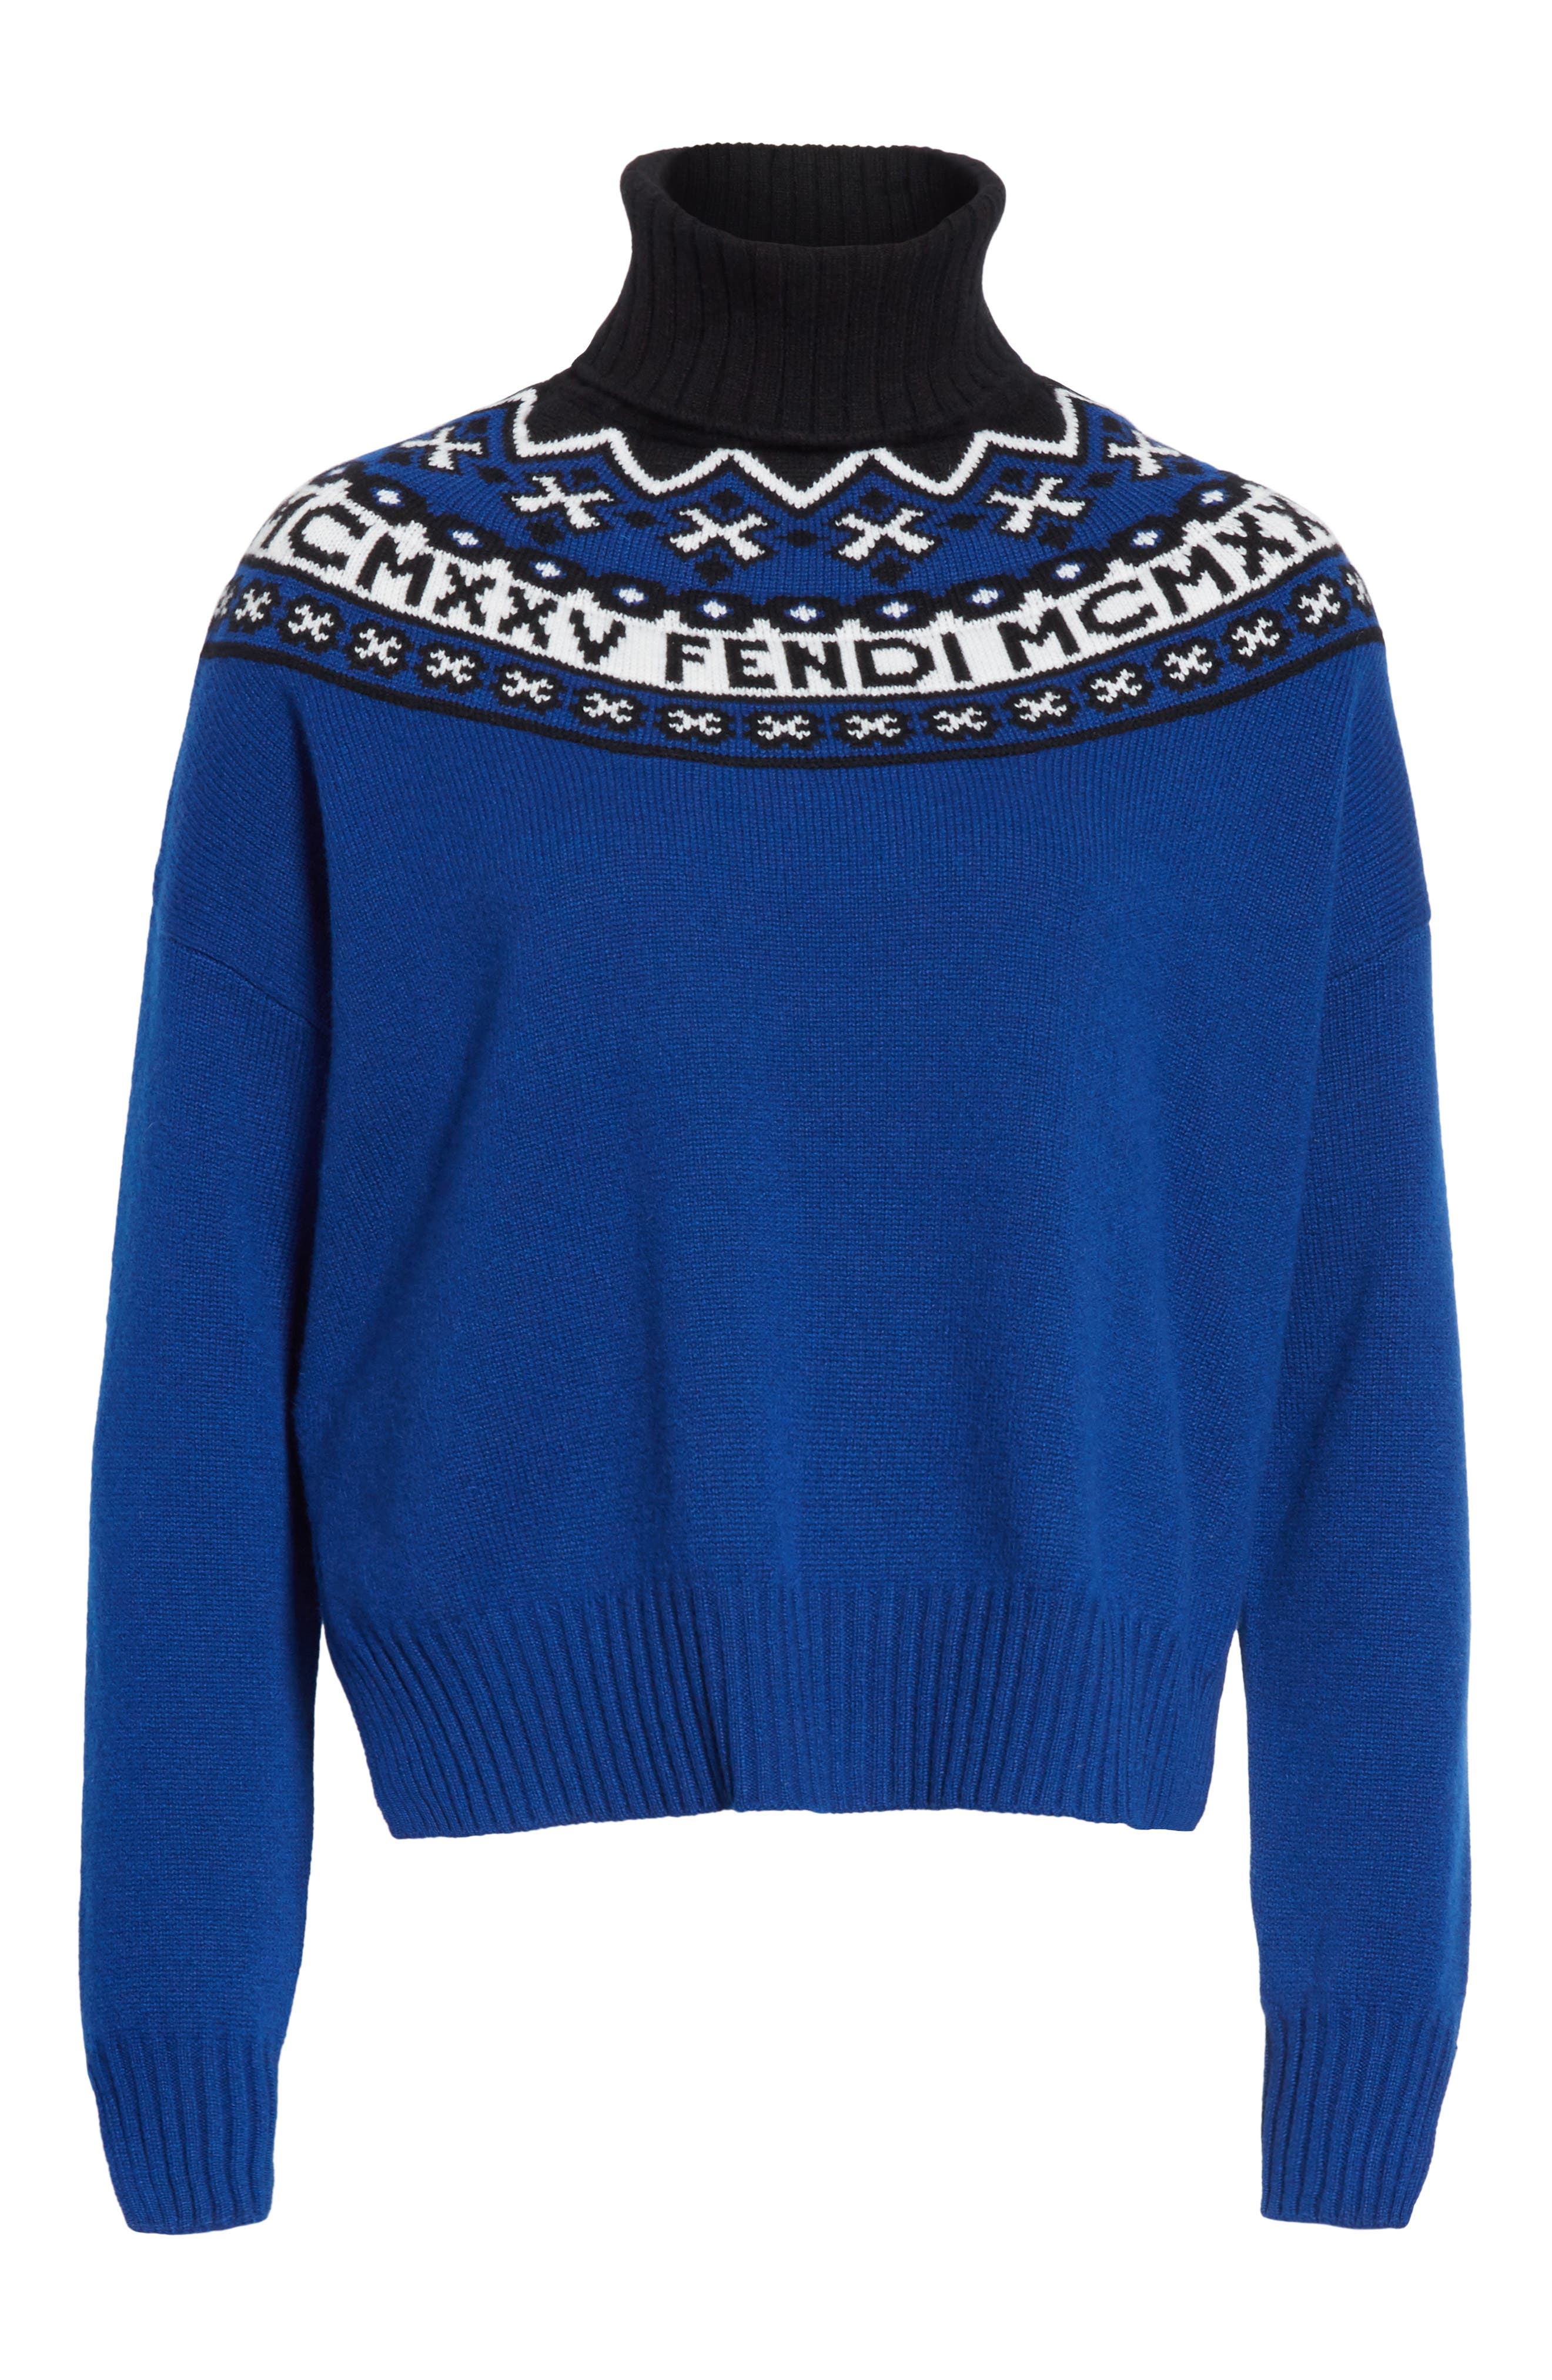 Heritage Wool & Cashmere Sweater,                             Alternate thumbnail 6, color,